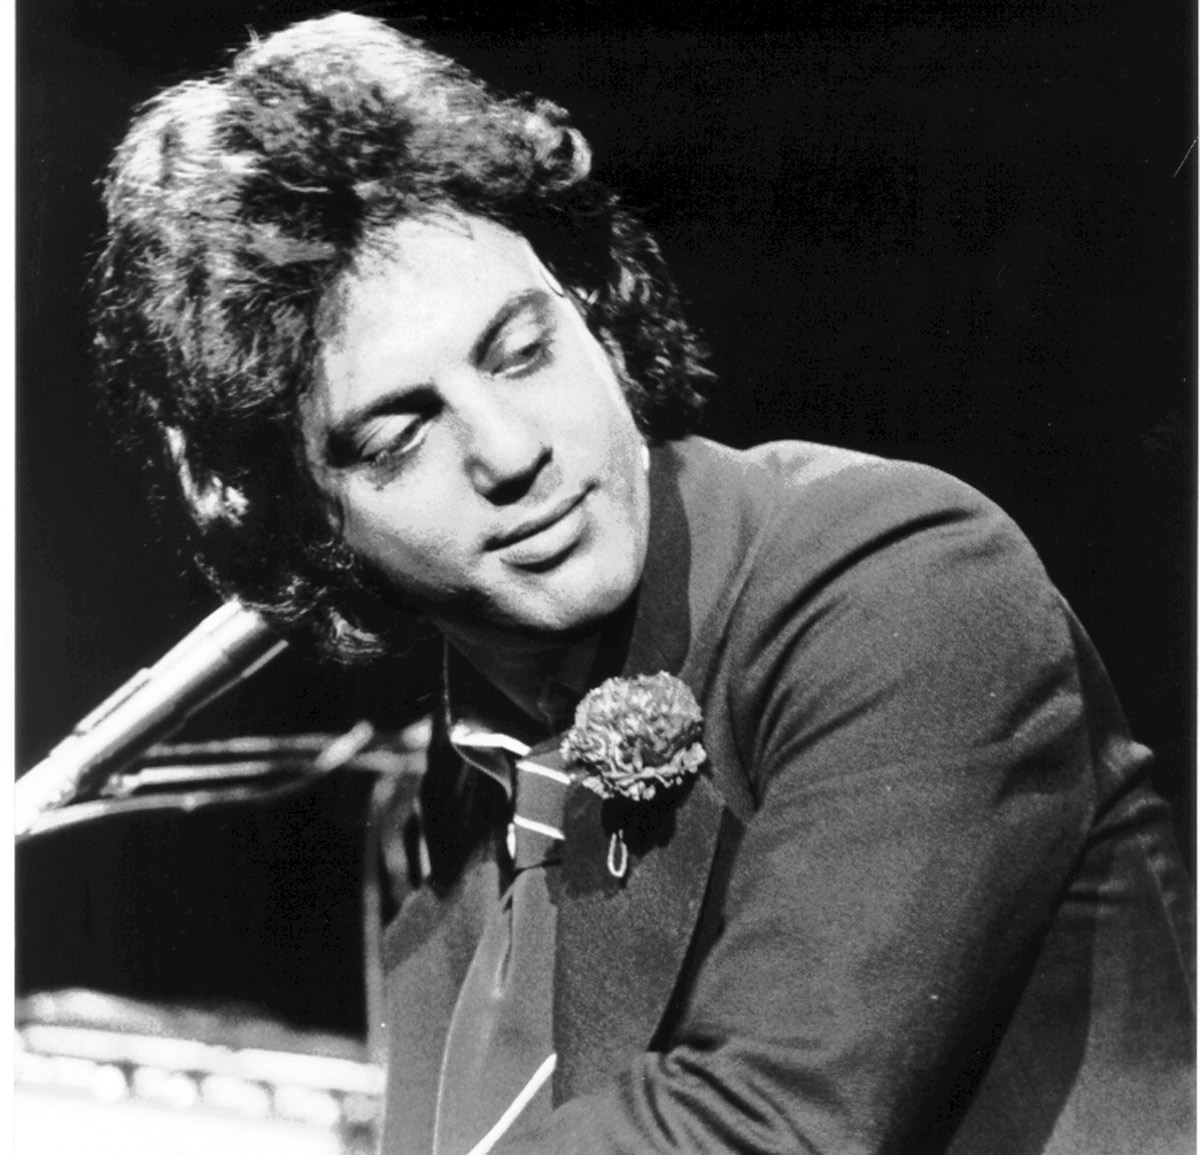 Billy Joel Song Quotes: The Longest Time